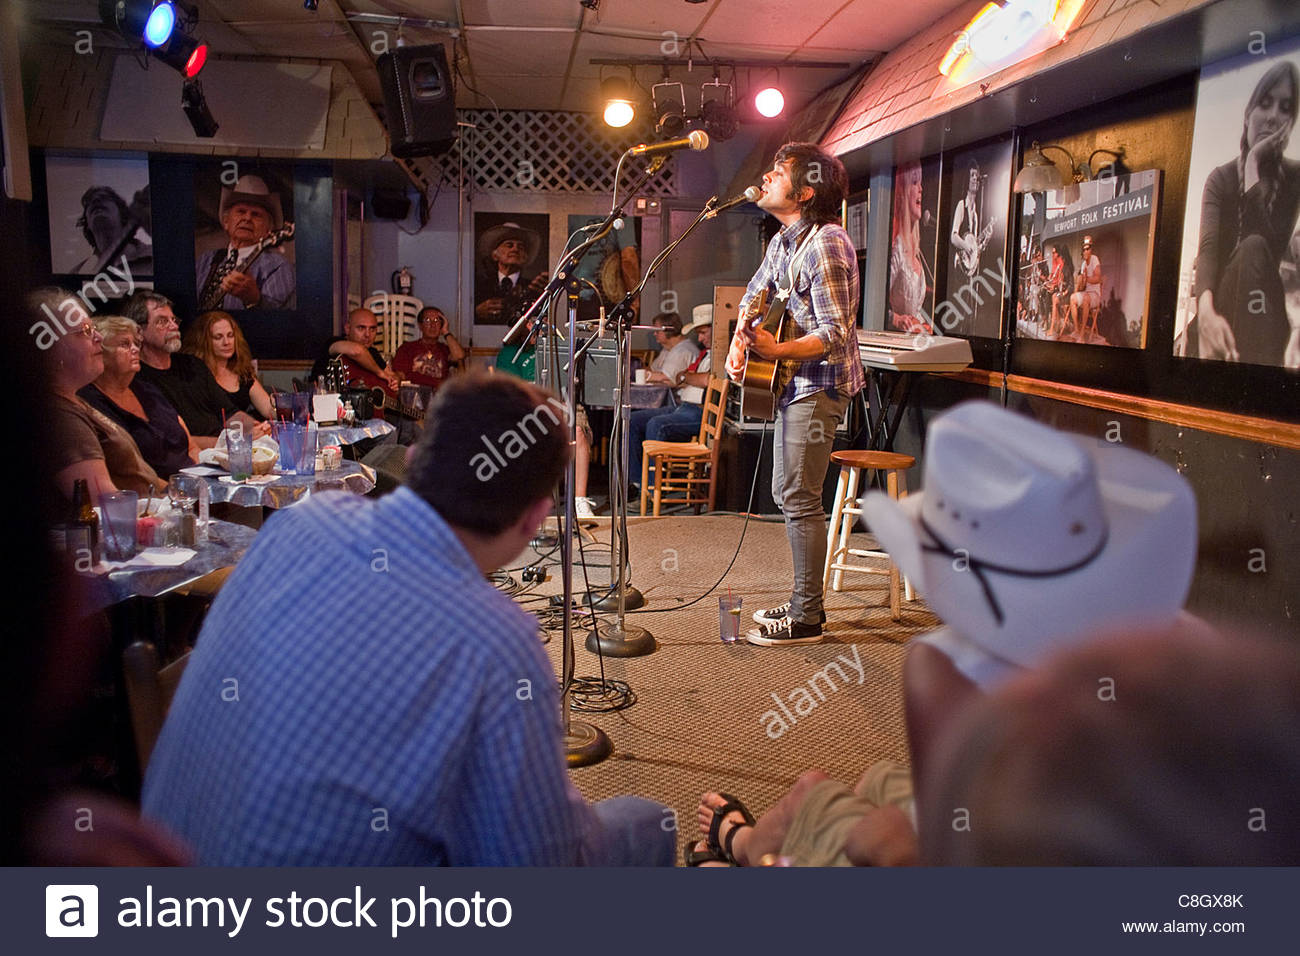 Open mic at the Bluebird Cafe at night. - Stock Image